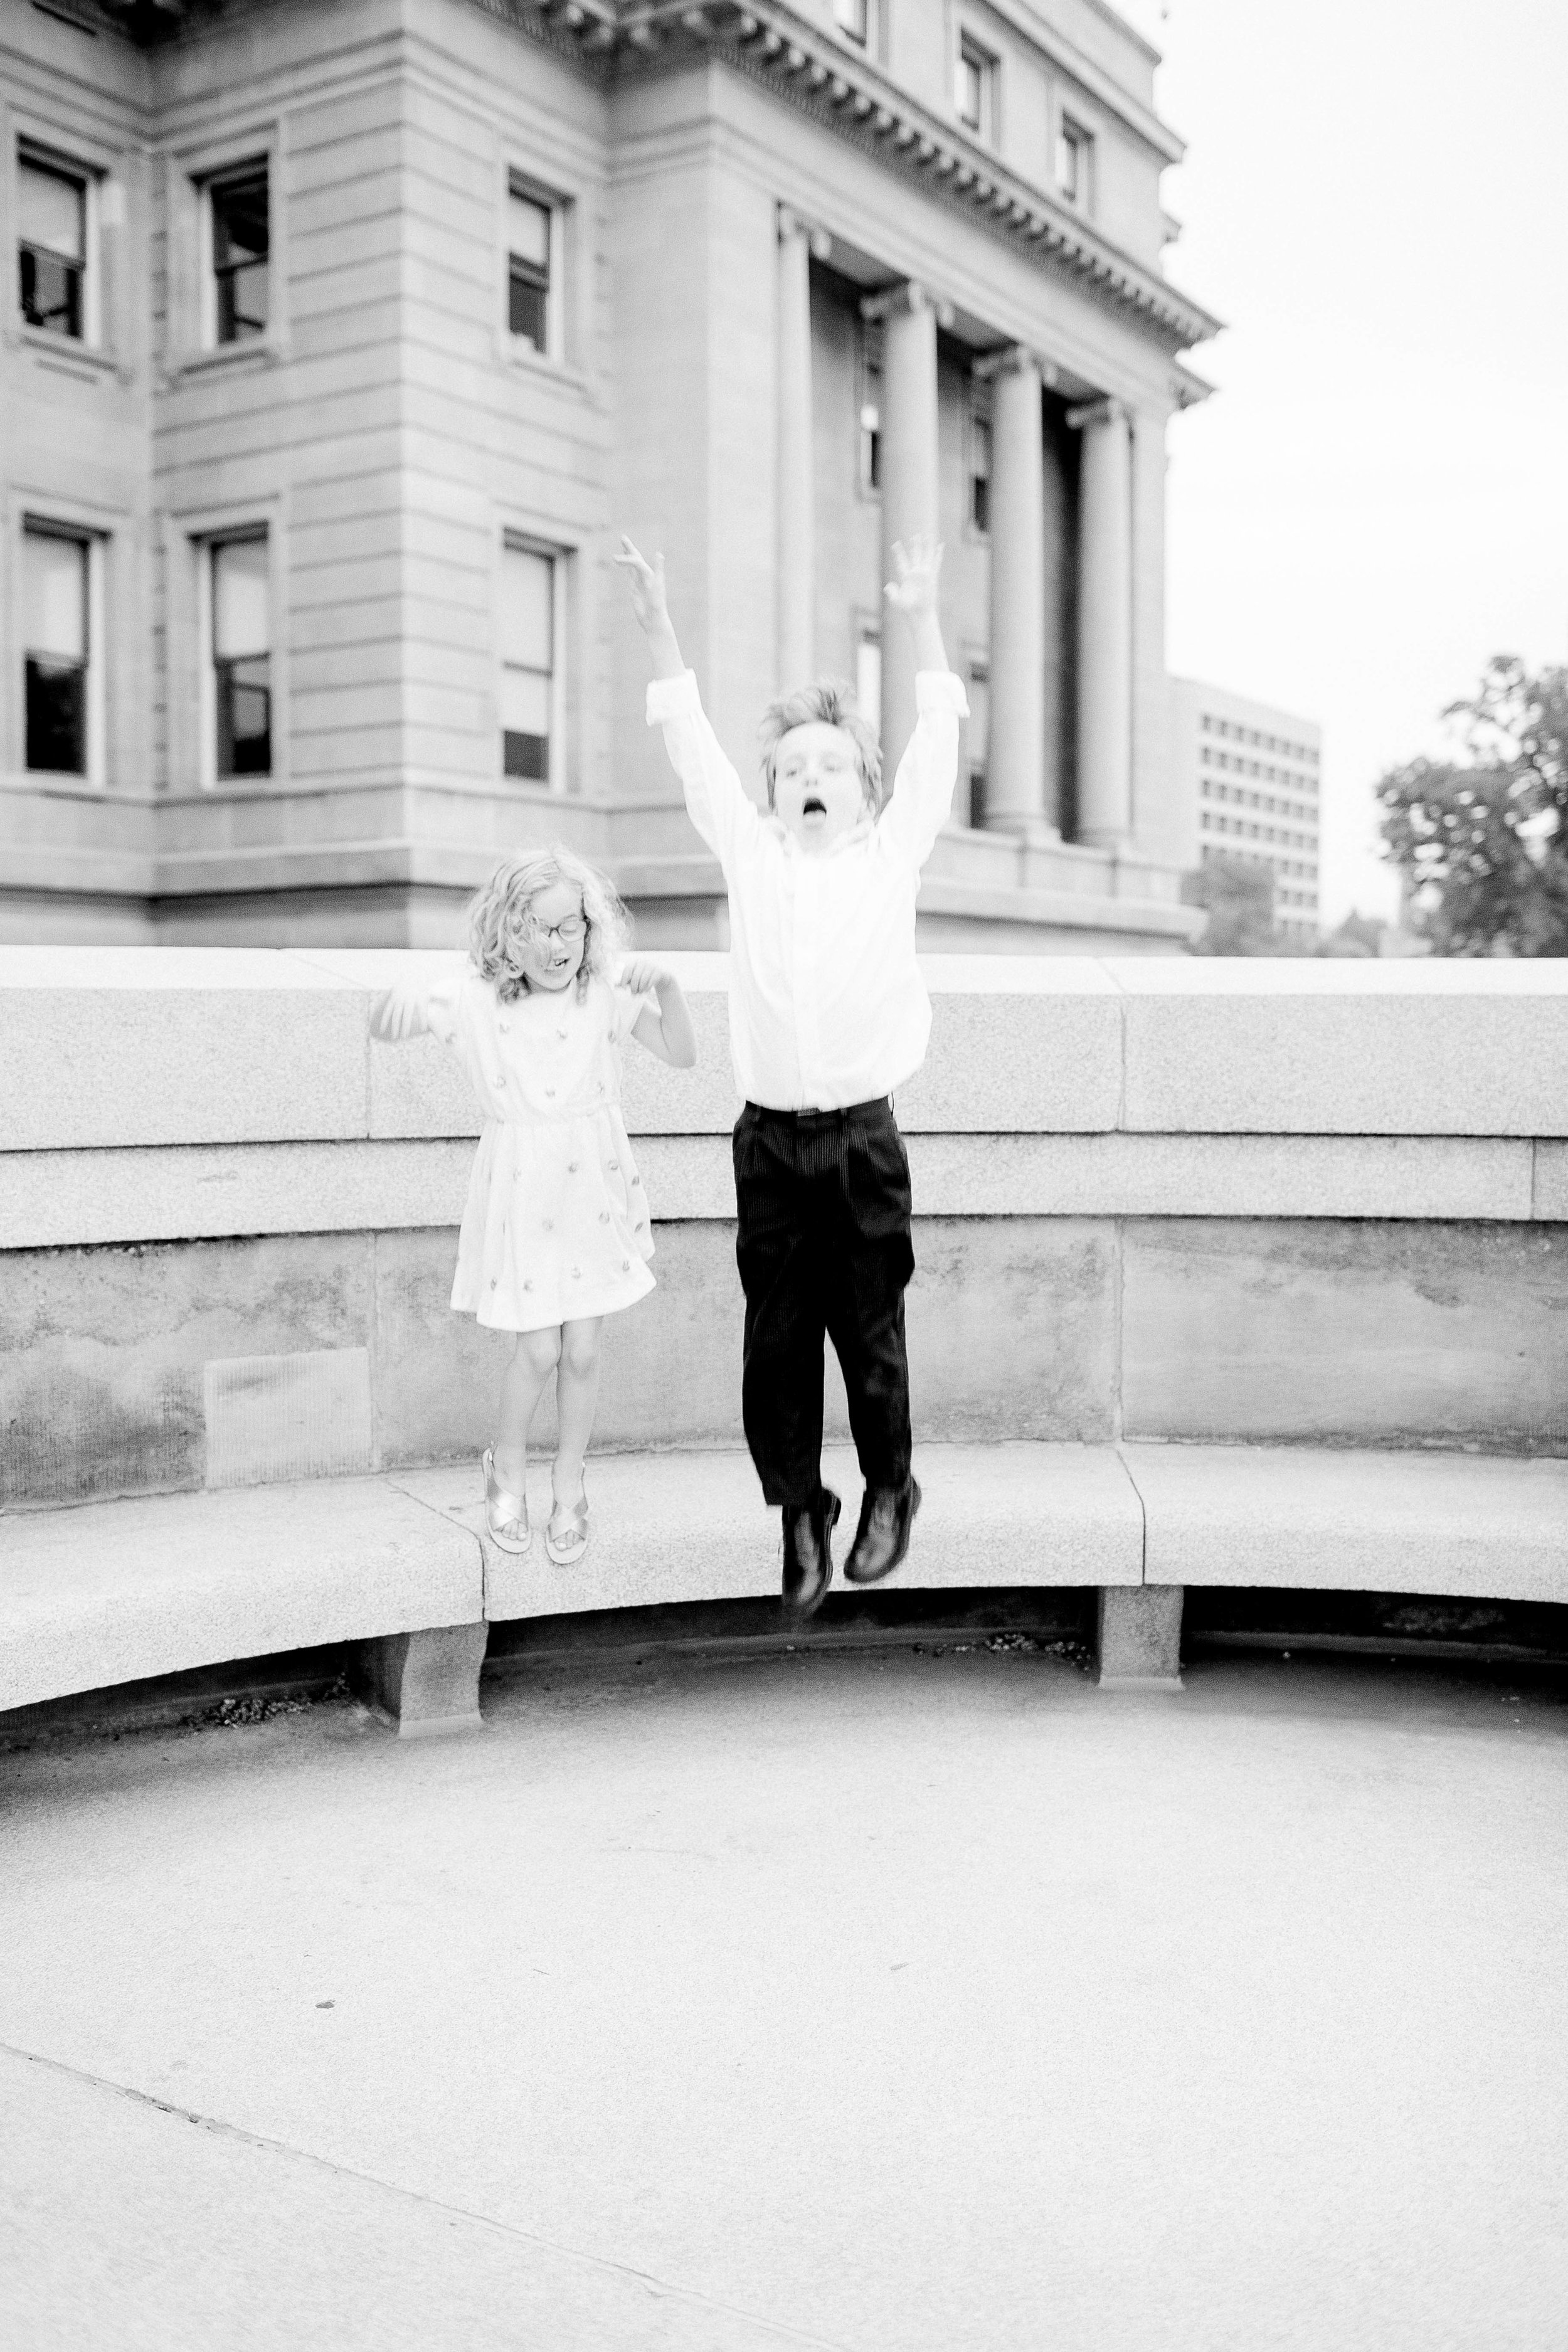 Boise Capital Building- Boise Capital Family Photos- Boise Capital Family Session- Boise Family Photographer- Idaho Family Photographer- Downtown Boise Family Session- North End- Downtown Boise